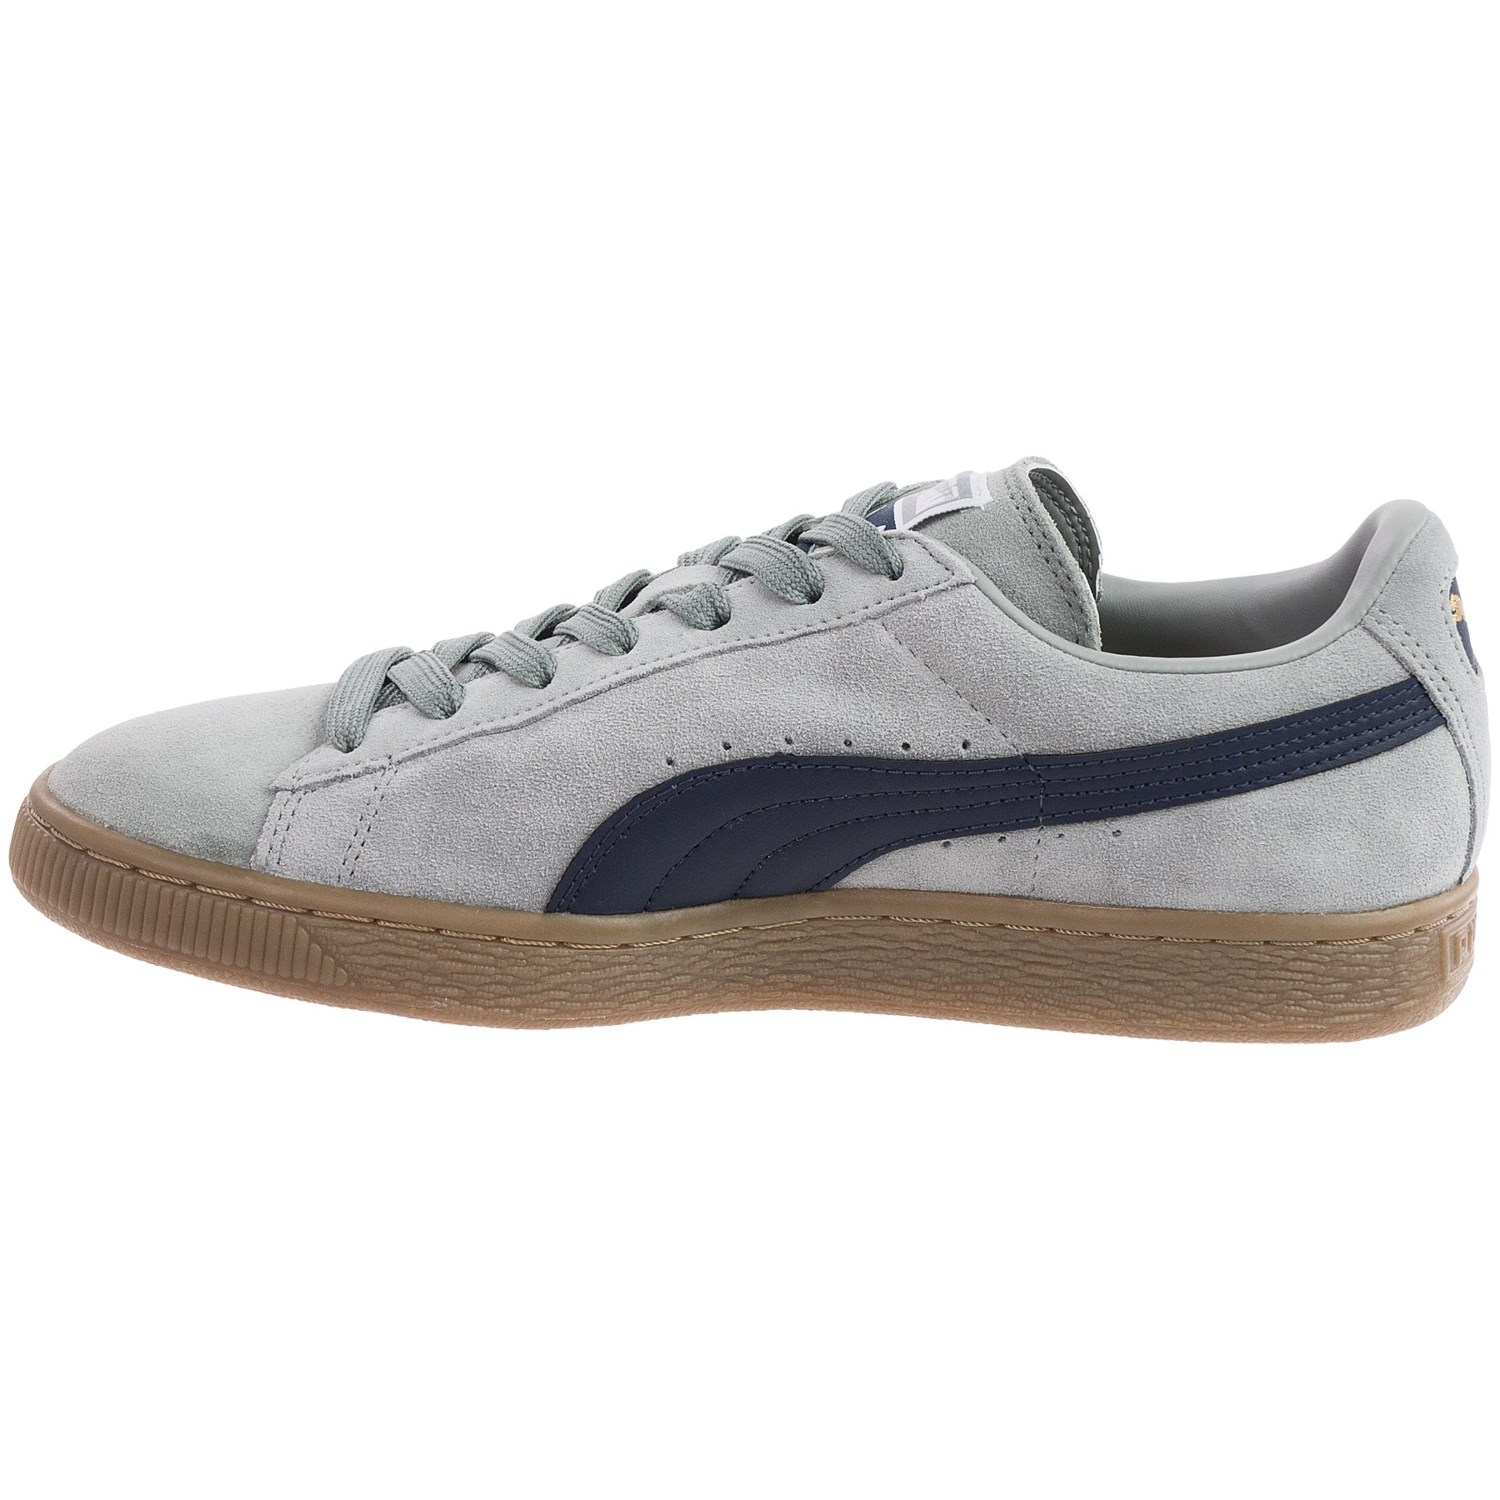 puma suede classic leather formstrip